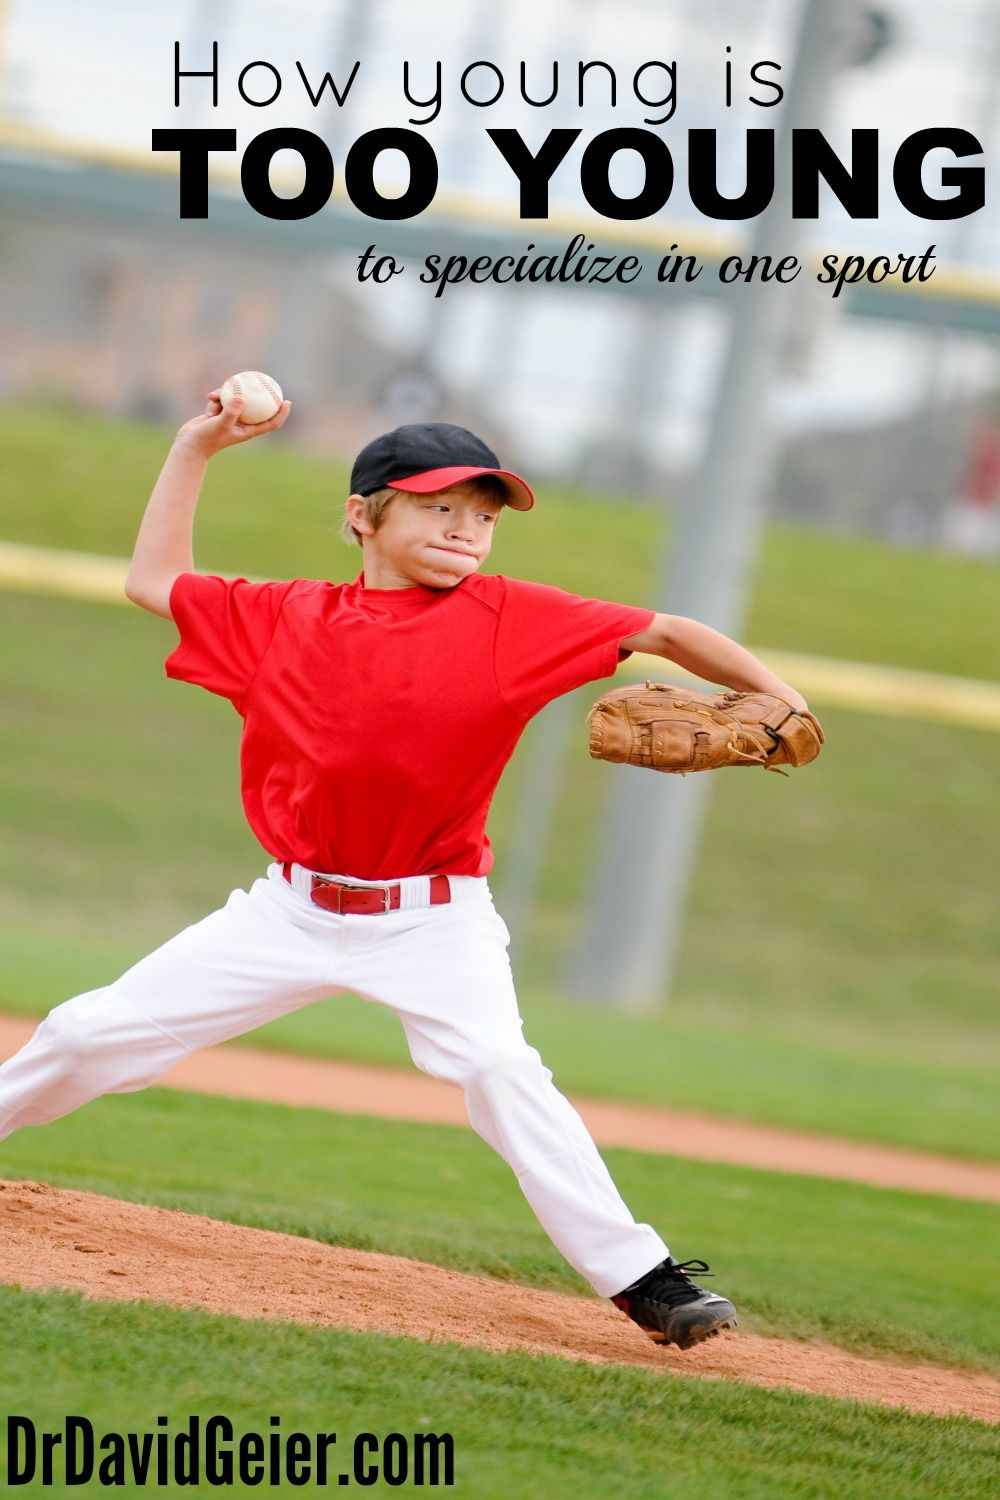 How young is too young to specialize in one sport